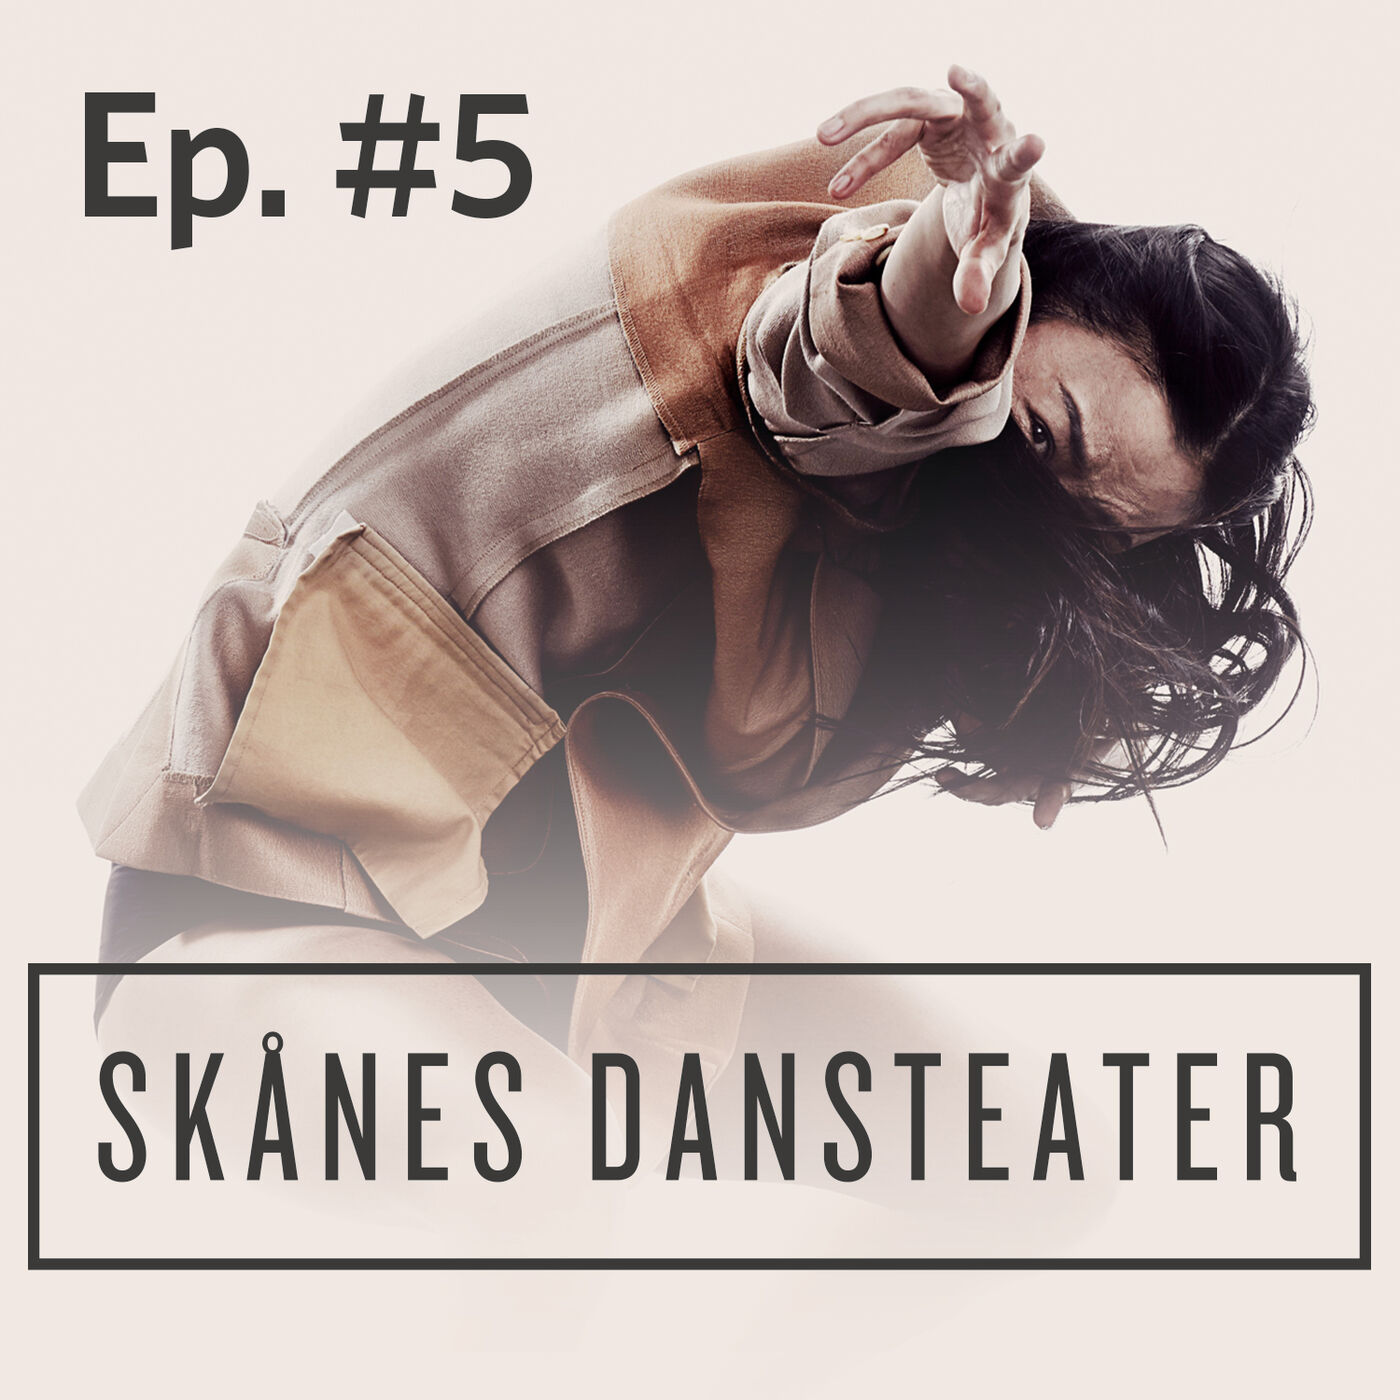 Episode 5. Dance apprenticeships - A hop, a skip and a lot of emailing